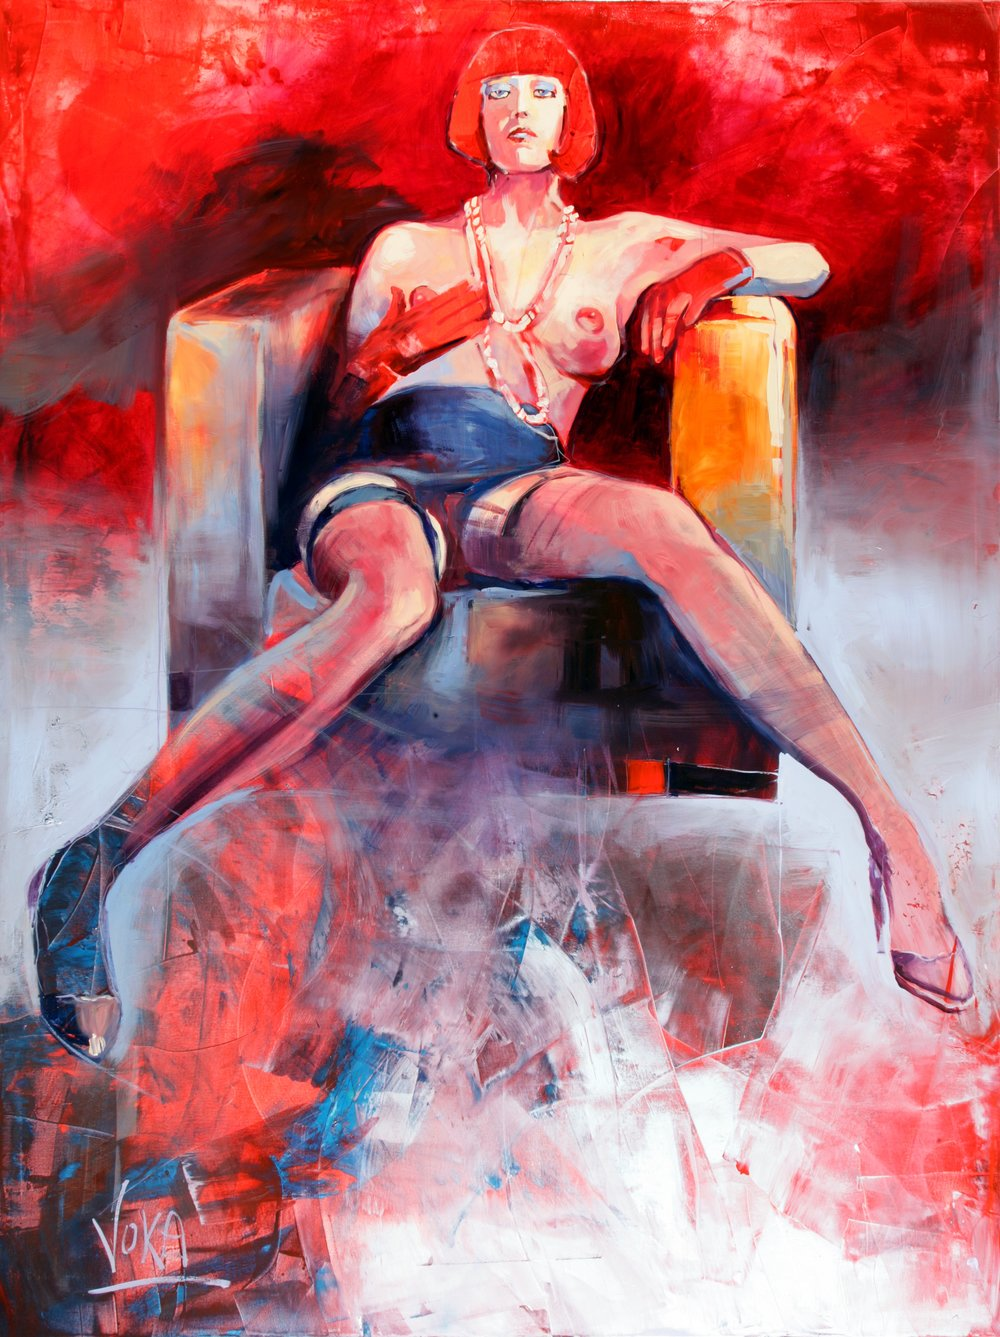 NUDE 02, 200x150 cm / 78,7x59,1 inch, Acrylic on Canvas